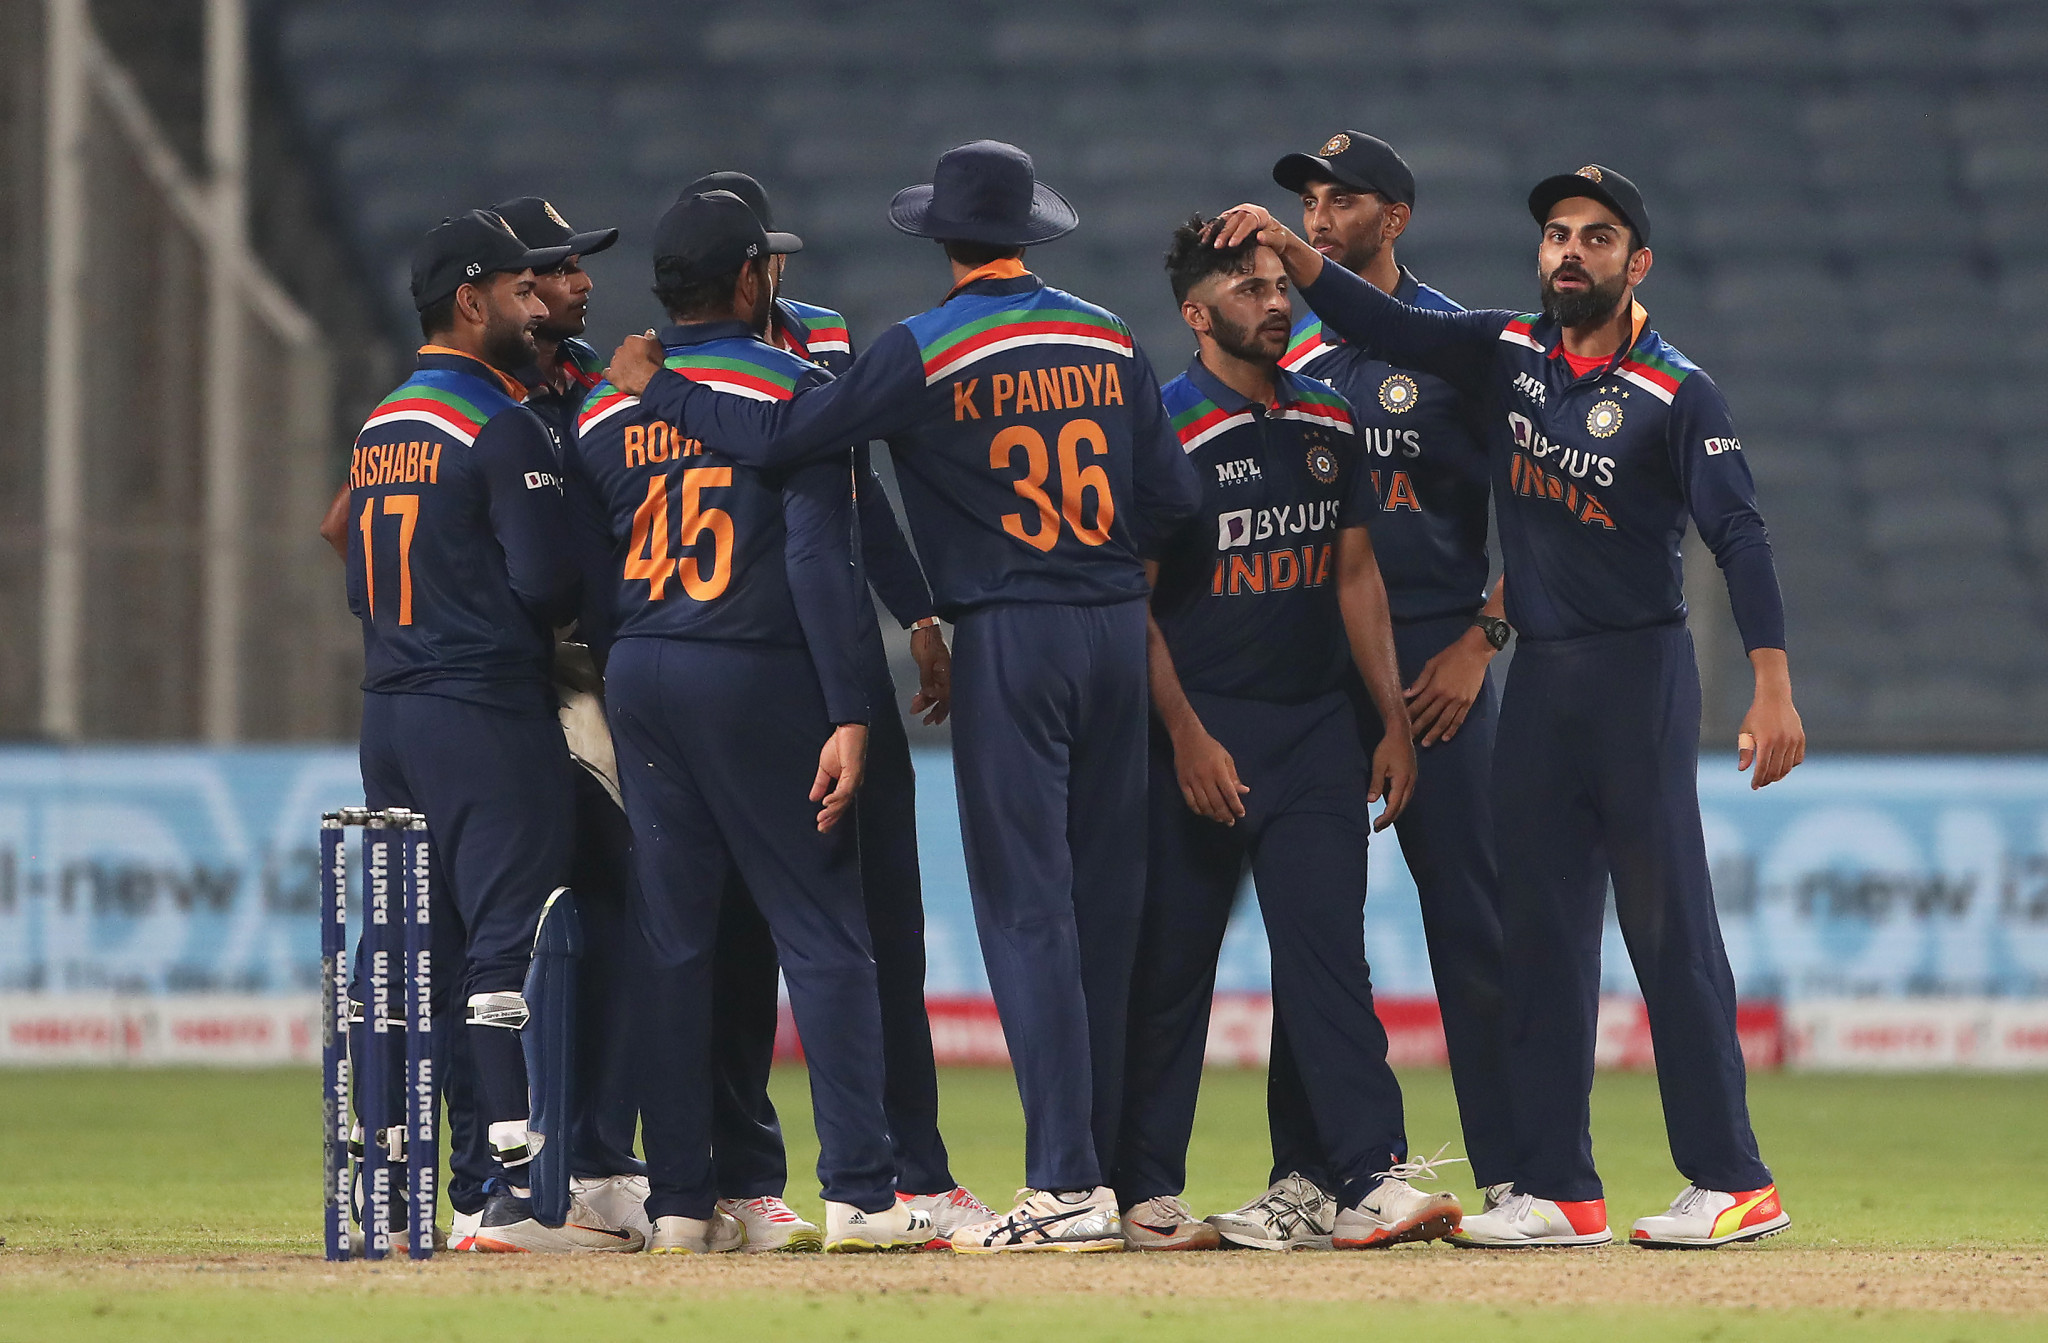 The Board of Control for Cricket in India say they principally support sending teams if the sport is included at the Los Angeles 2028 Olympics ©Getty Images